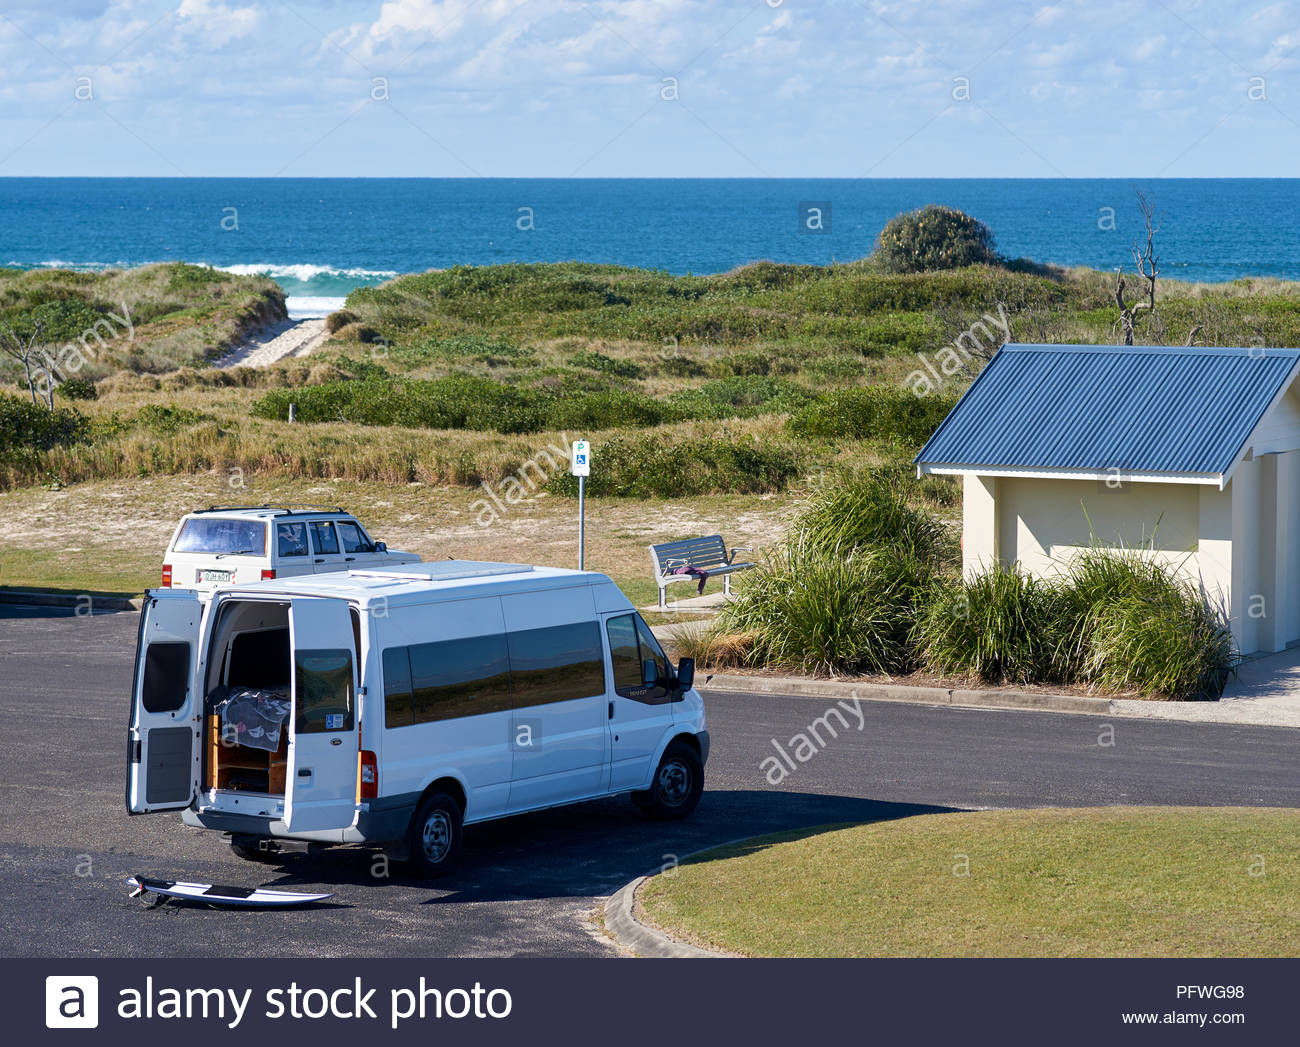 A white camper van, parked at the beach, with the back doors open and a surfboard lying on the ground. Taken at the North Wall, Iluka, NSW, Australia. - Stock Image